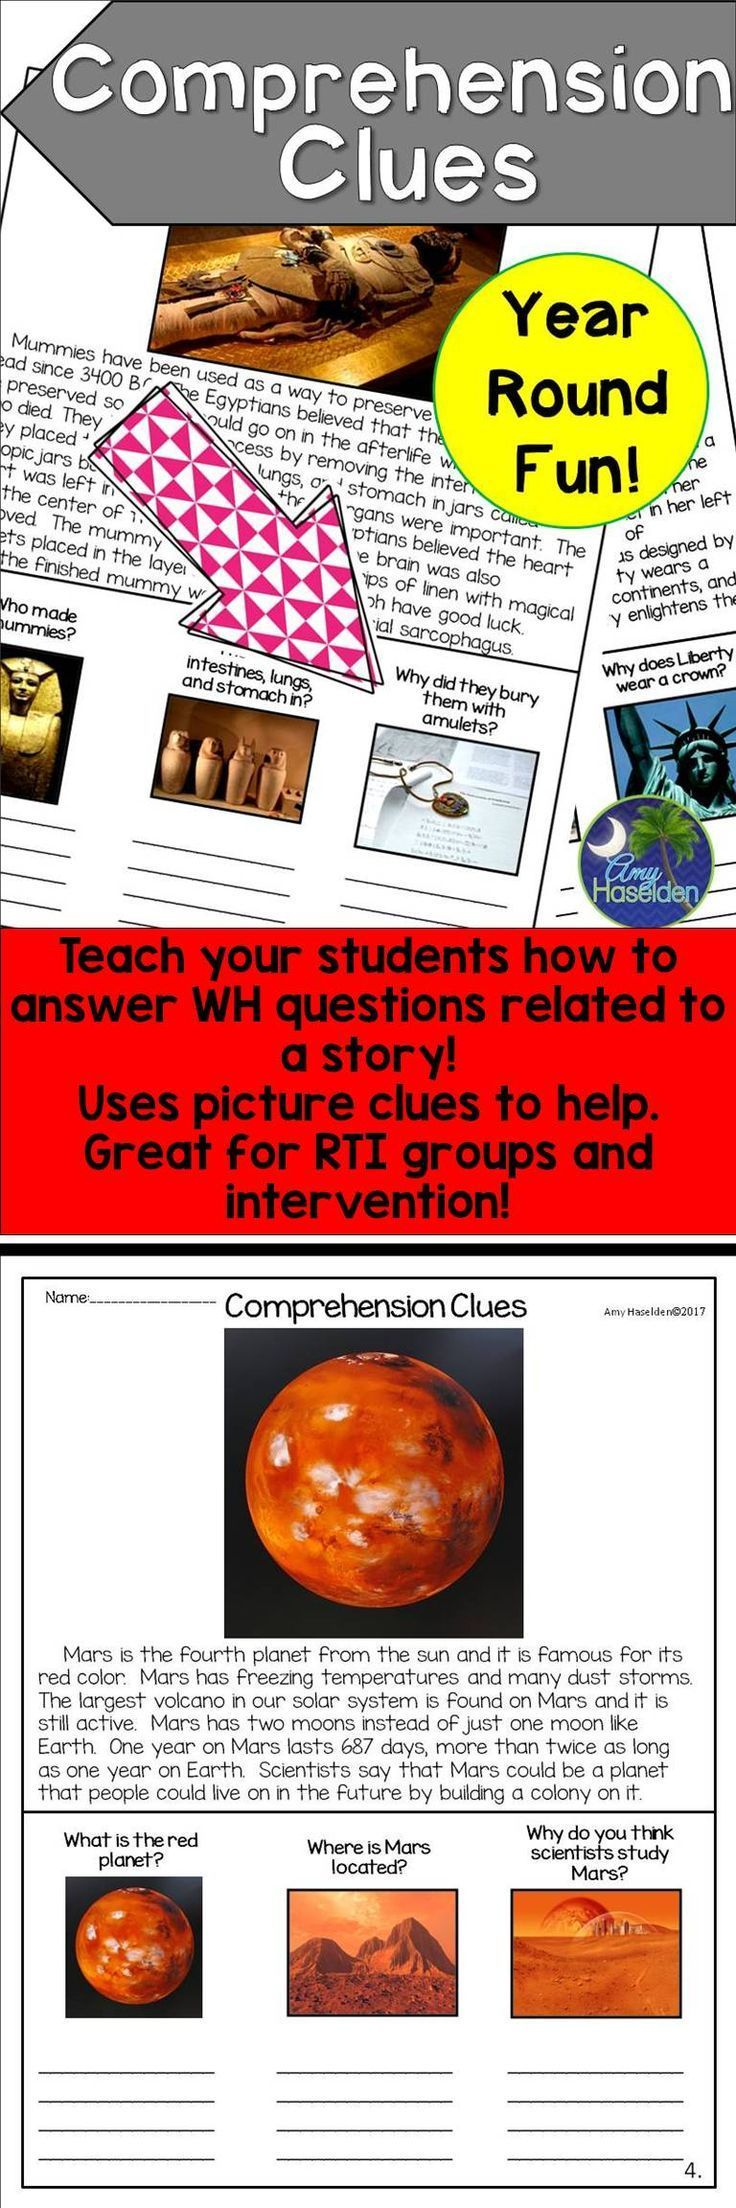 how to teach wh questions to preschoolers